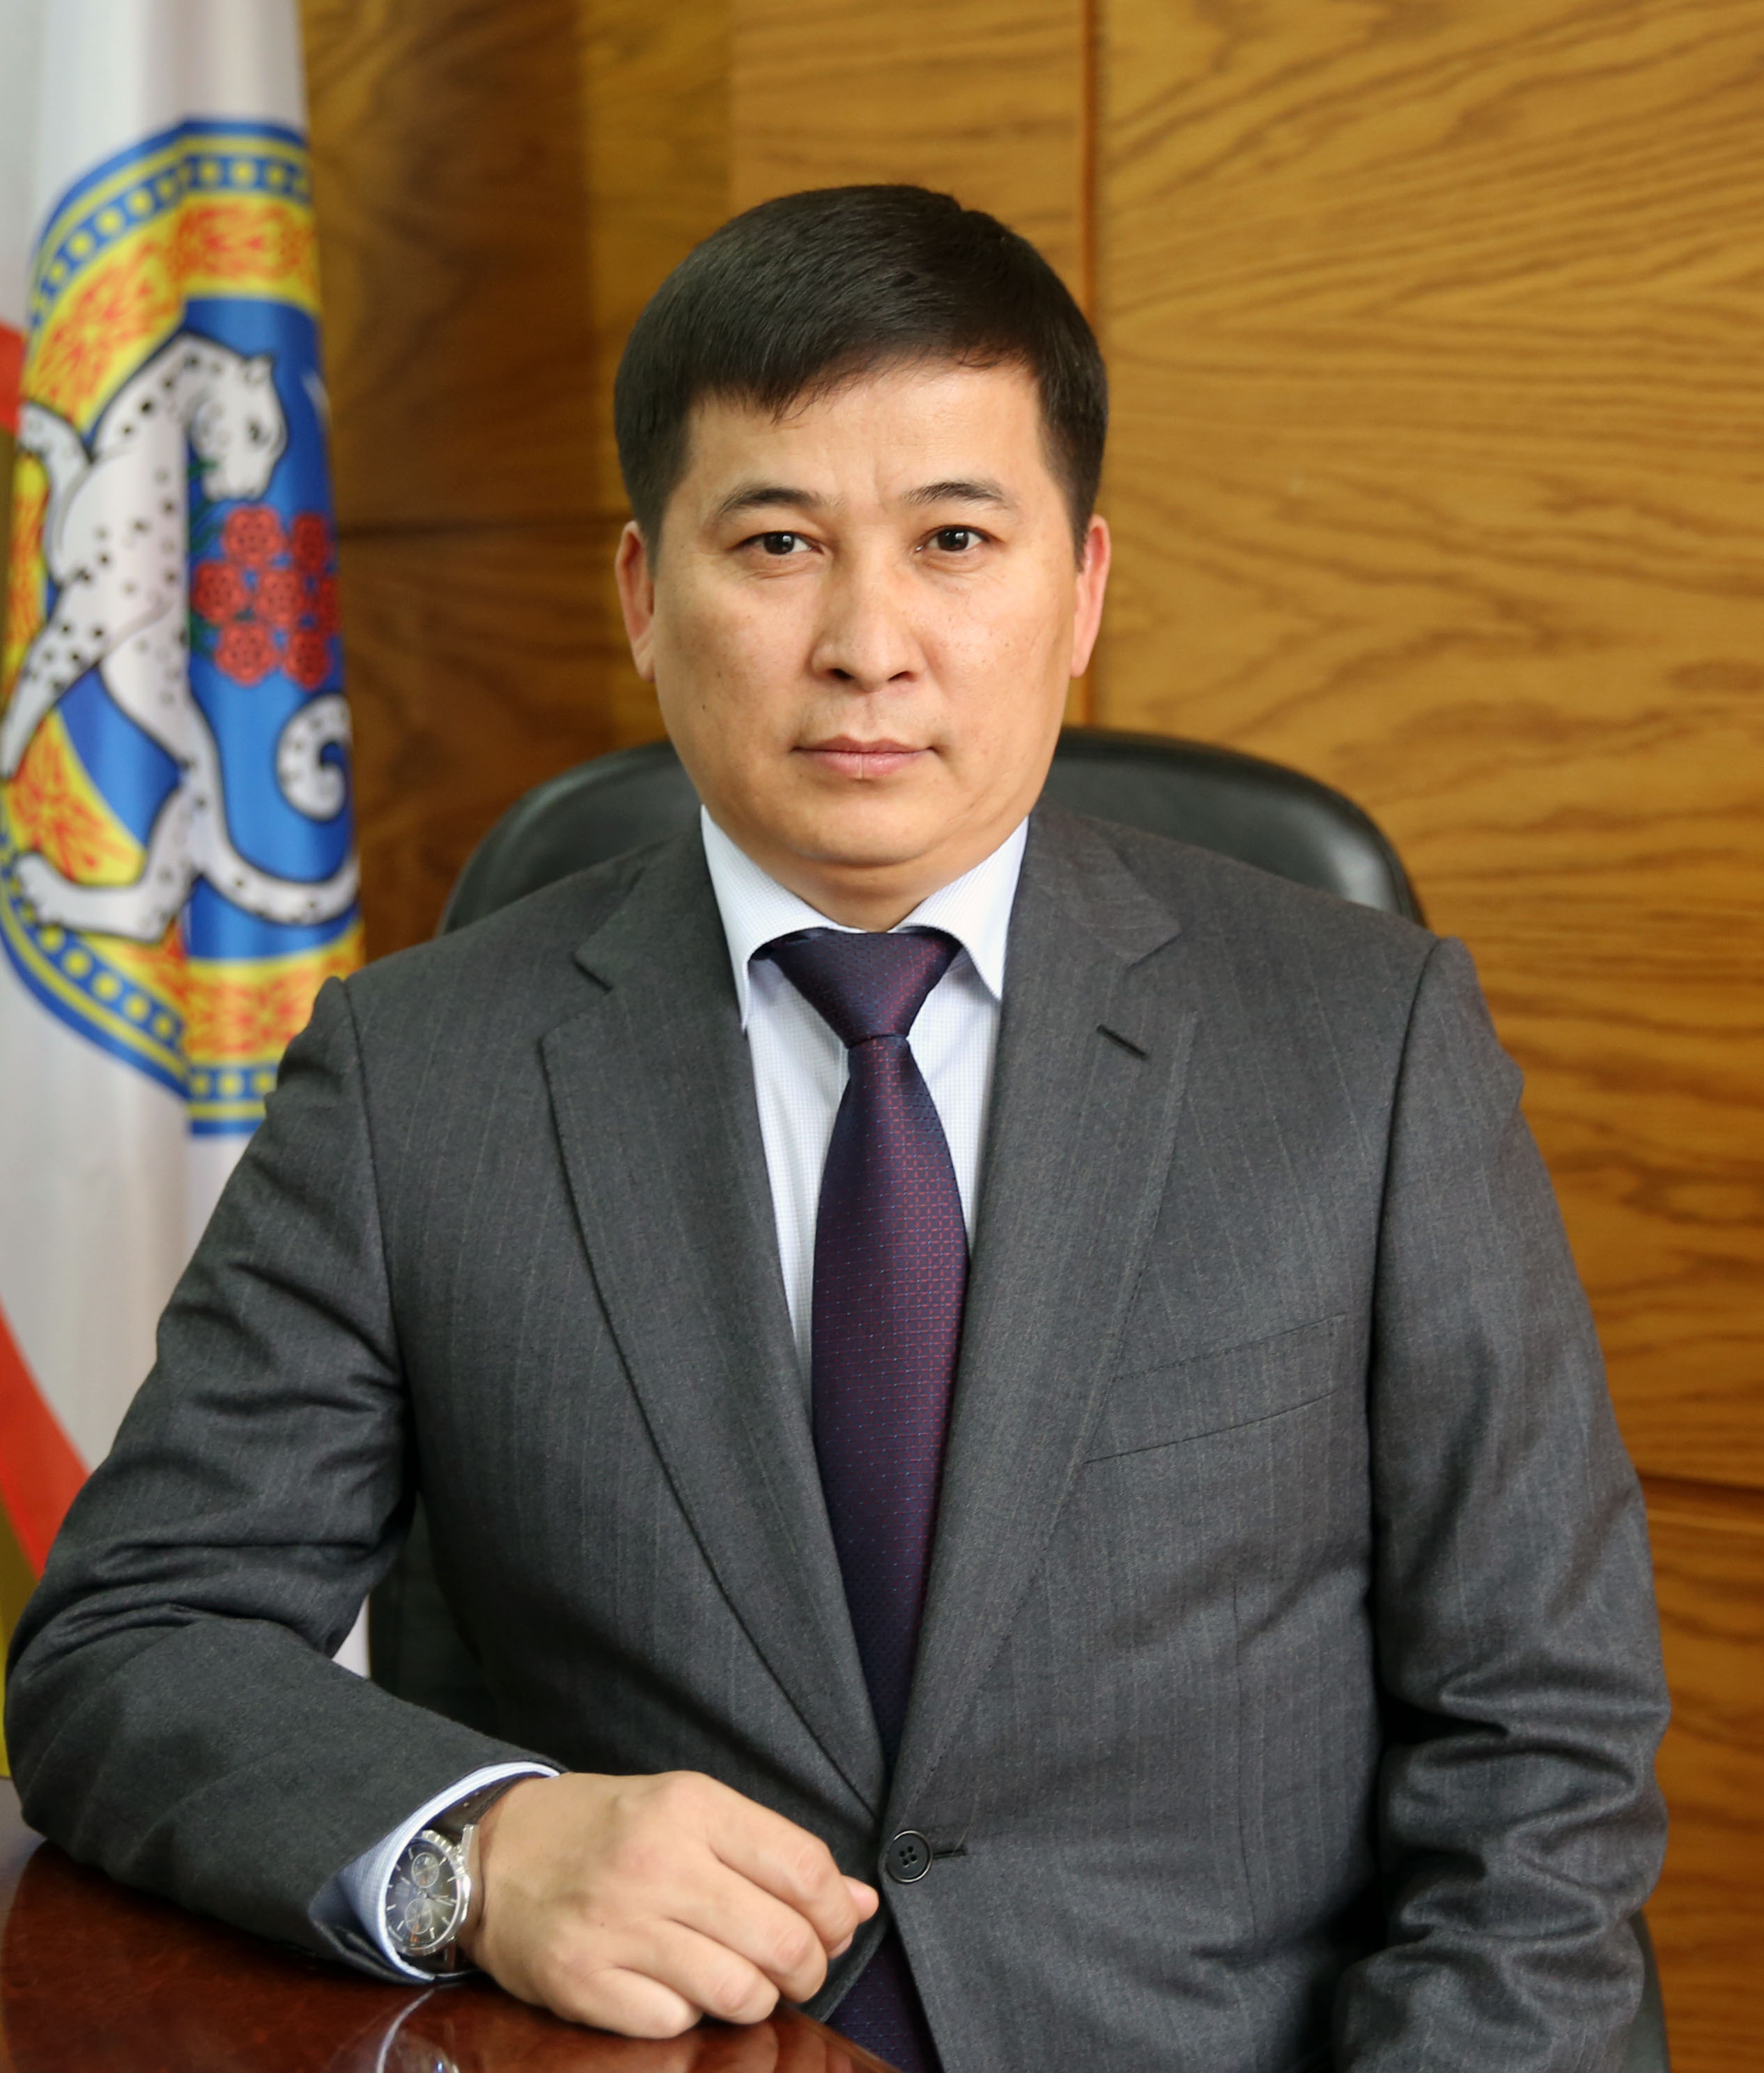 Ustenov Bagdaulet Nagymetbekovich - Deputy Chairman of the Management Board for Development ofMANAGING DIRECTOR OF KAPSHAGAY HPP OF